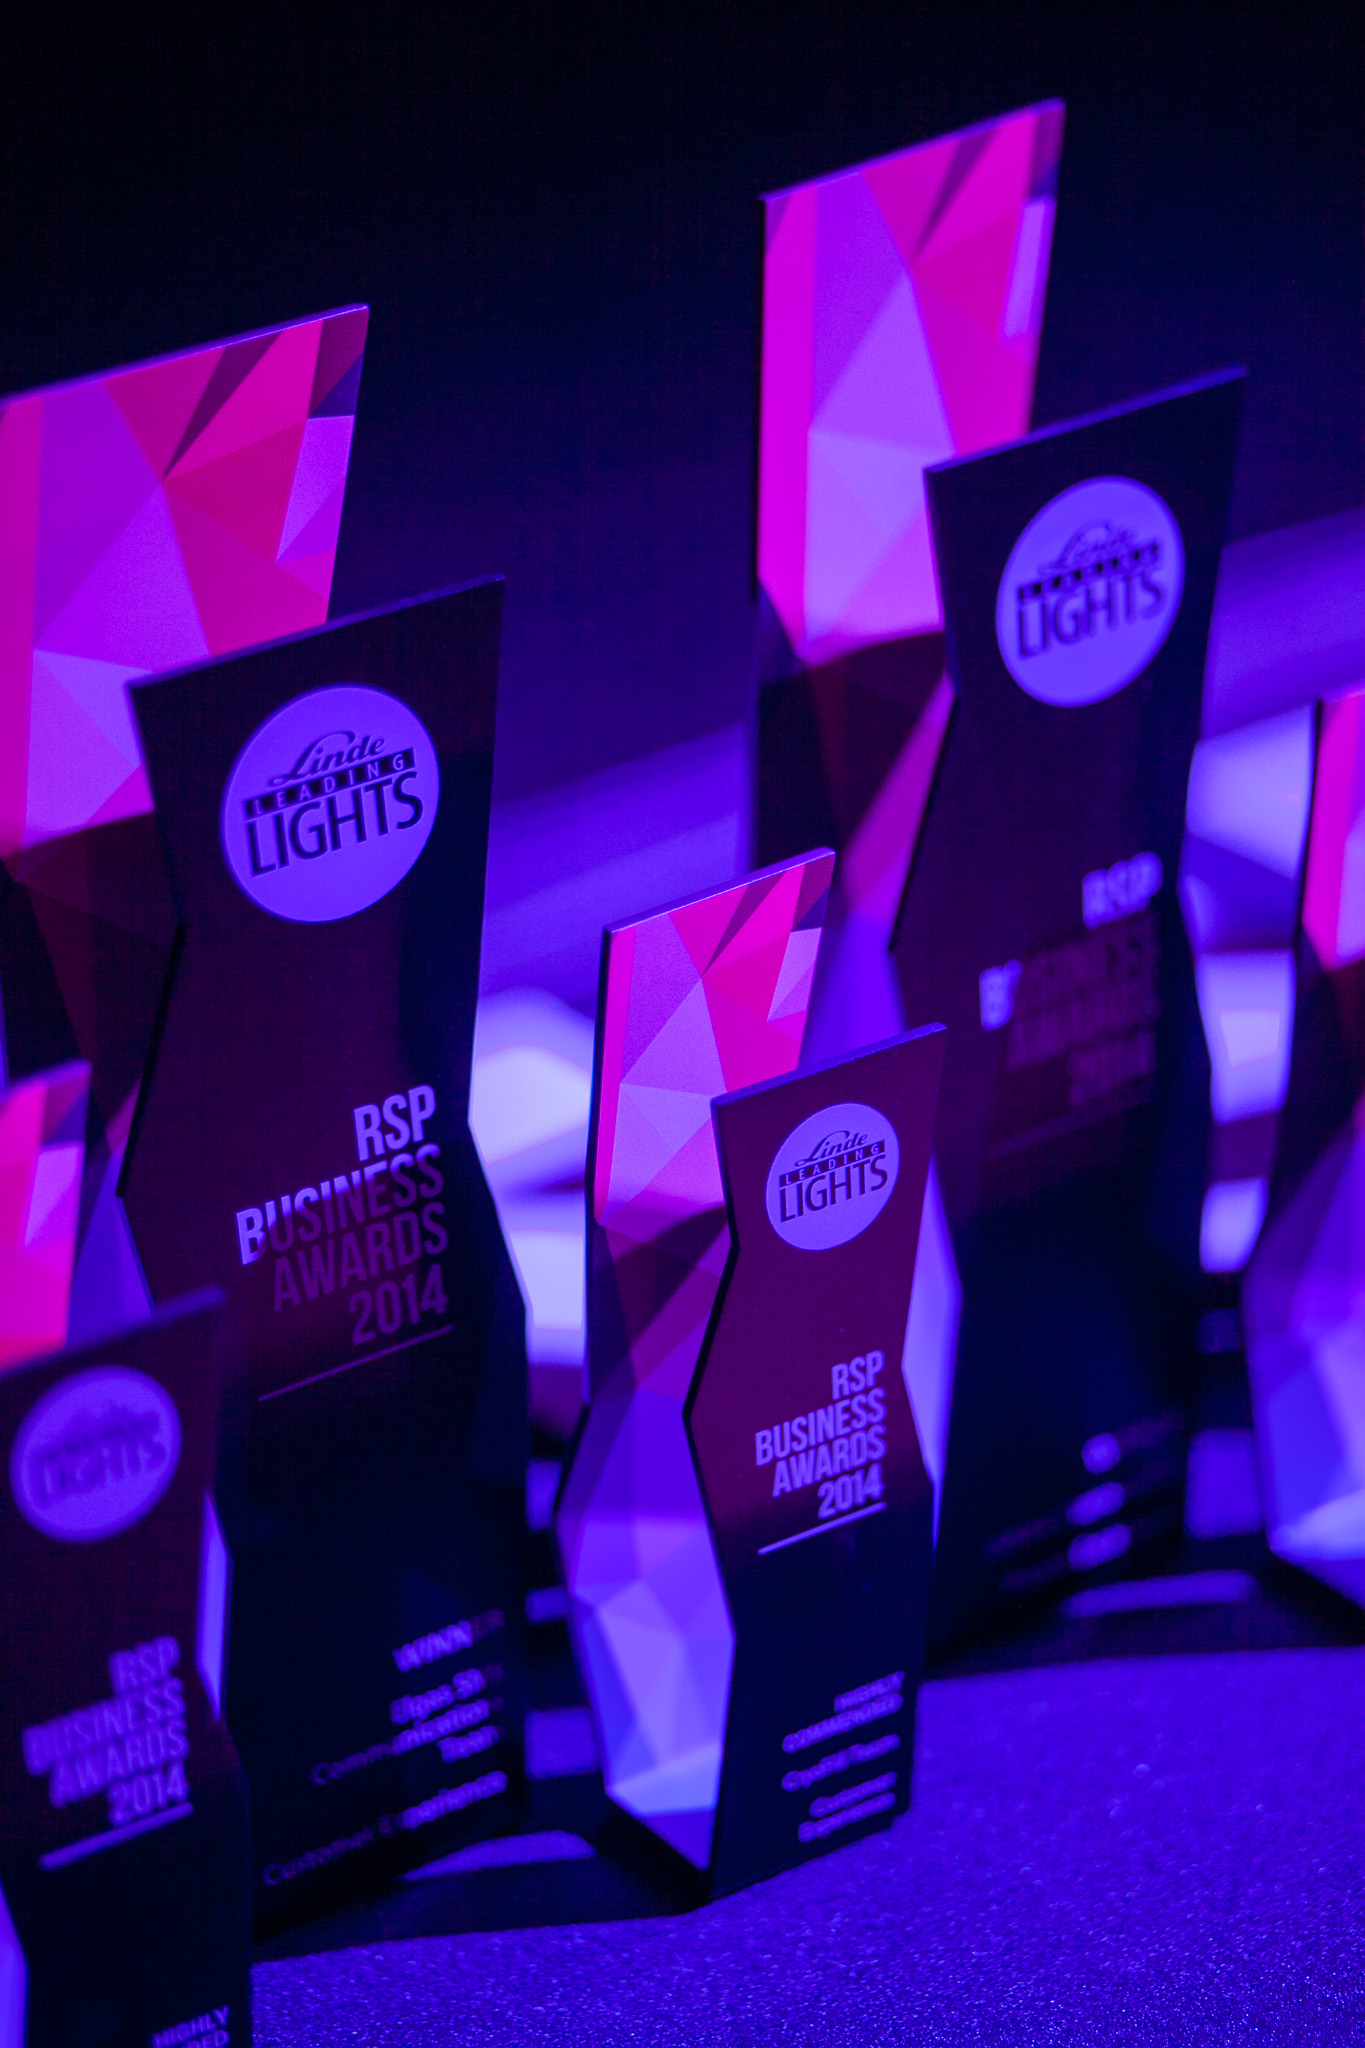 rsp business awards - leading lights custom trophies